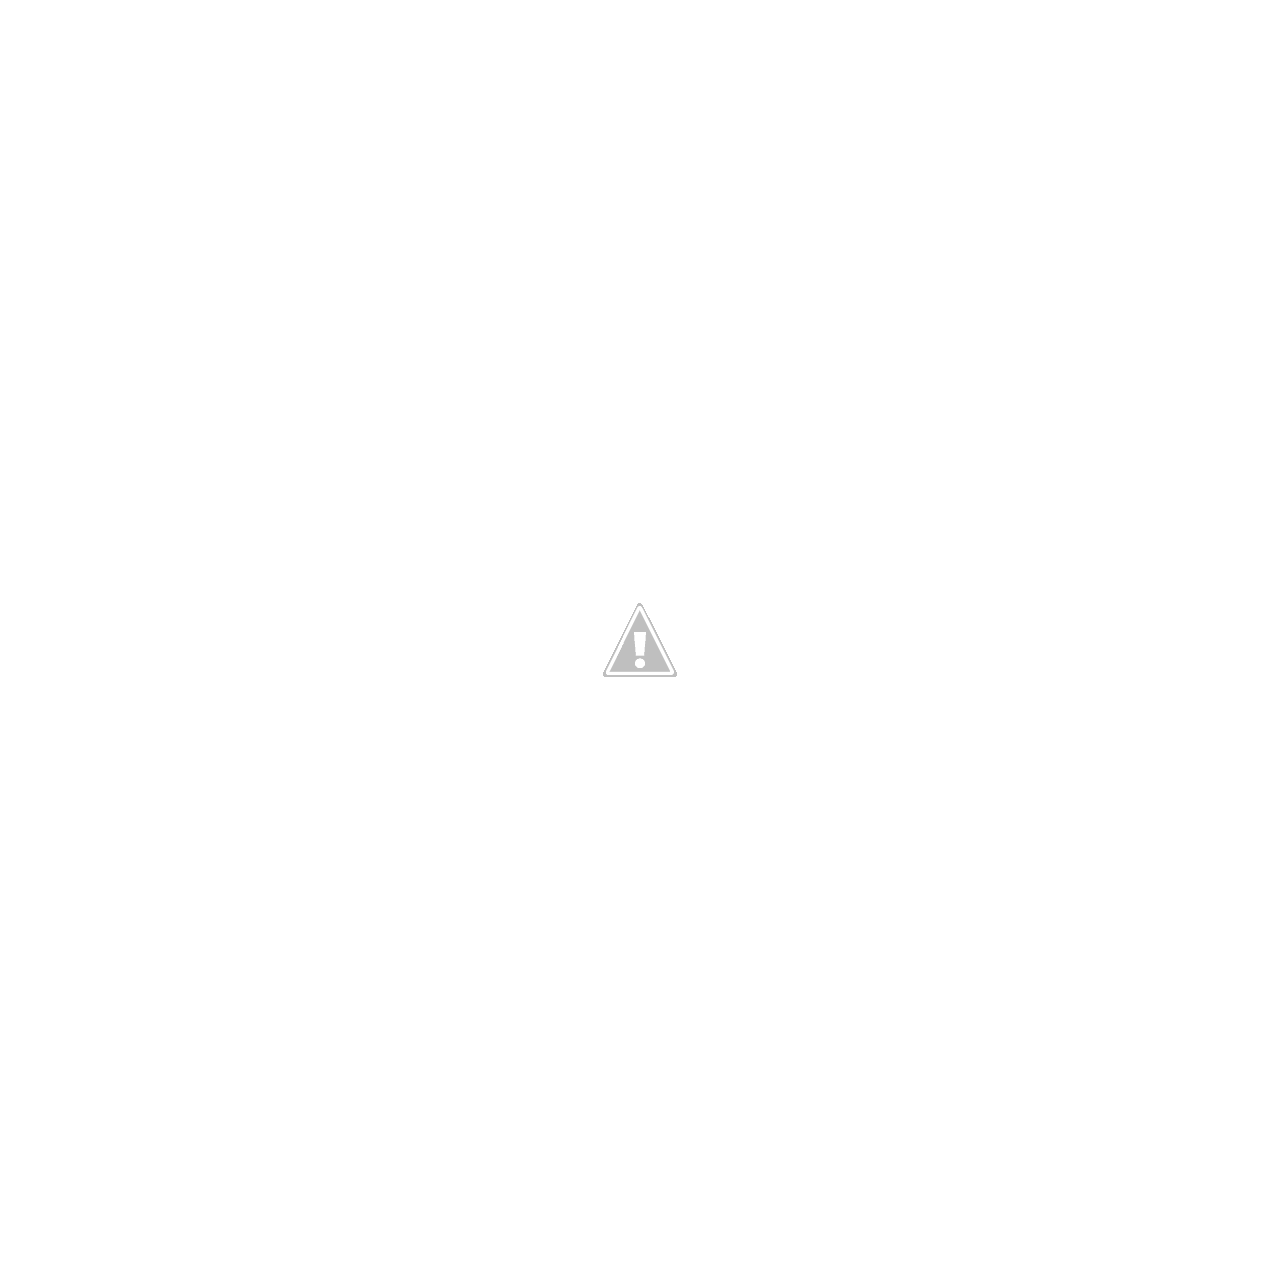 Toner Cartridge Refilling For Printer & Copier In Chennai - Toner